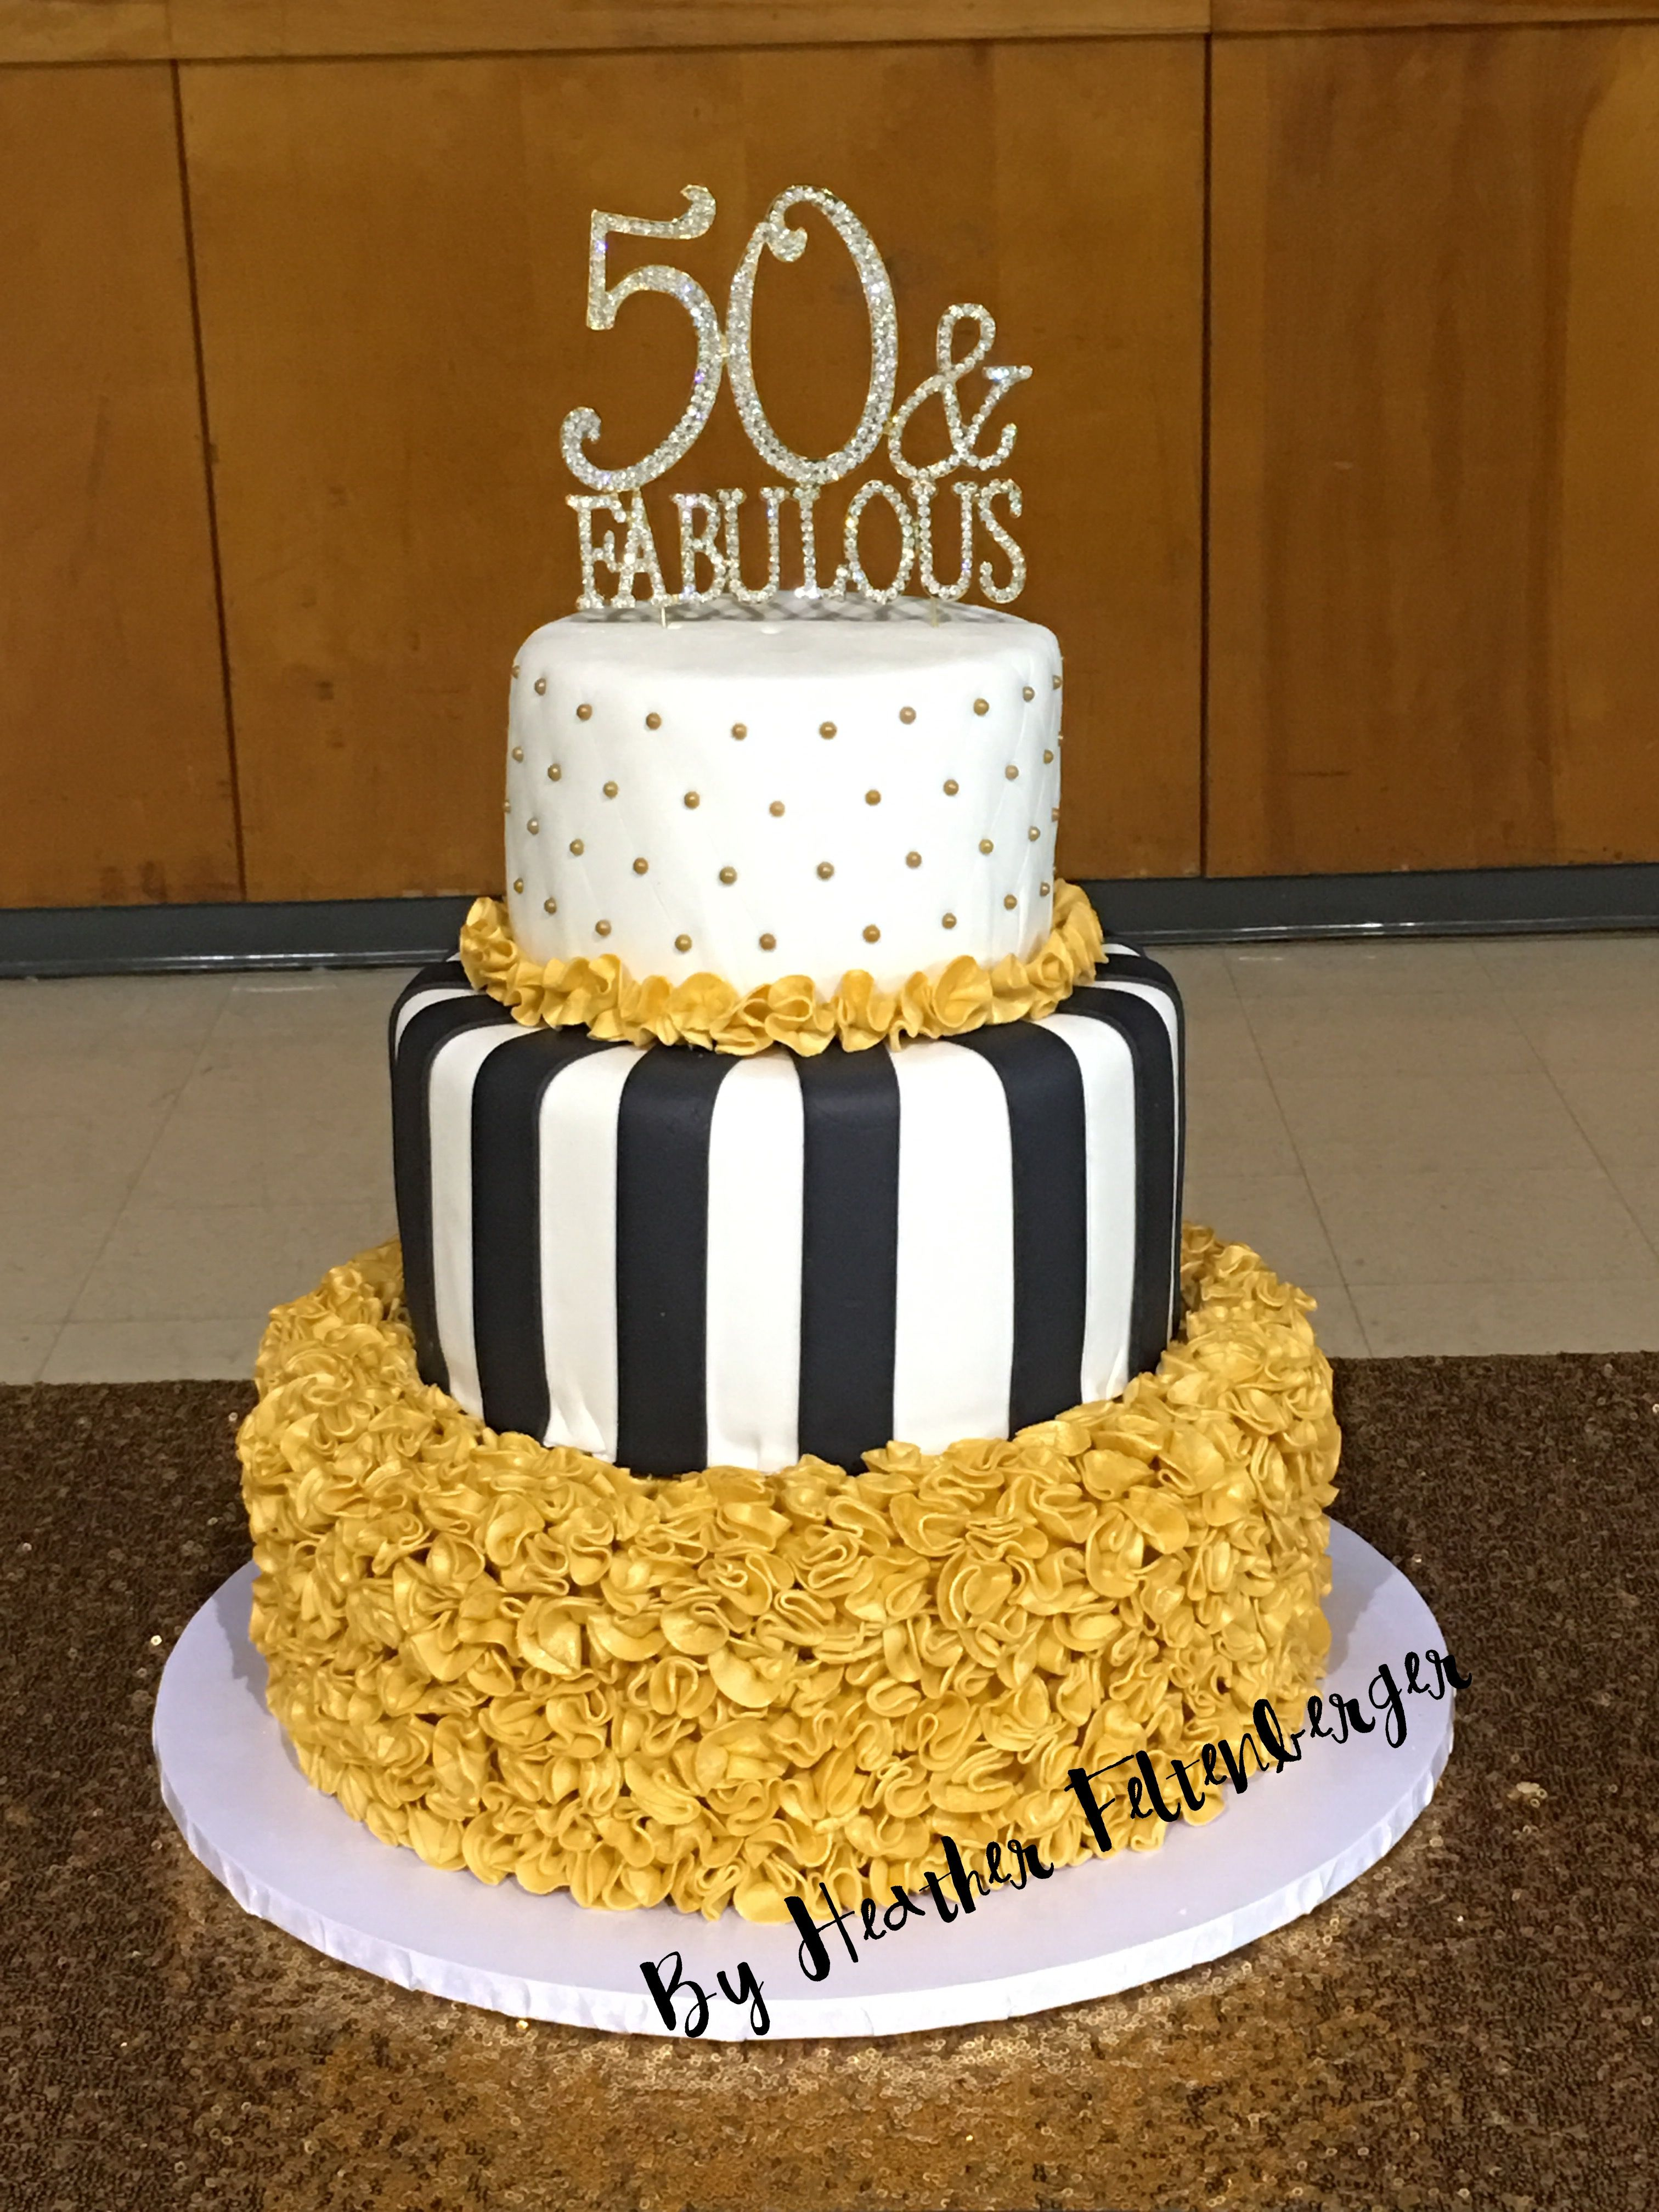 3 Tier 50th Birthday Ruffle Cake Black White And Gold